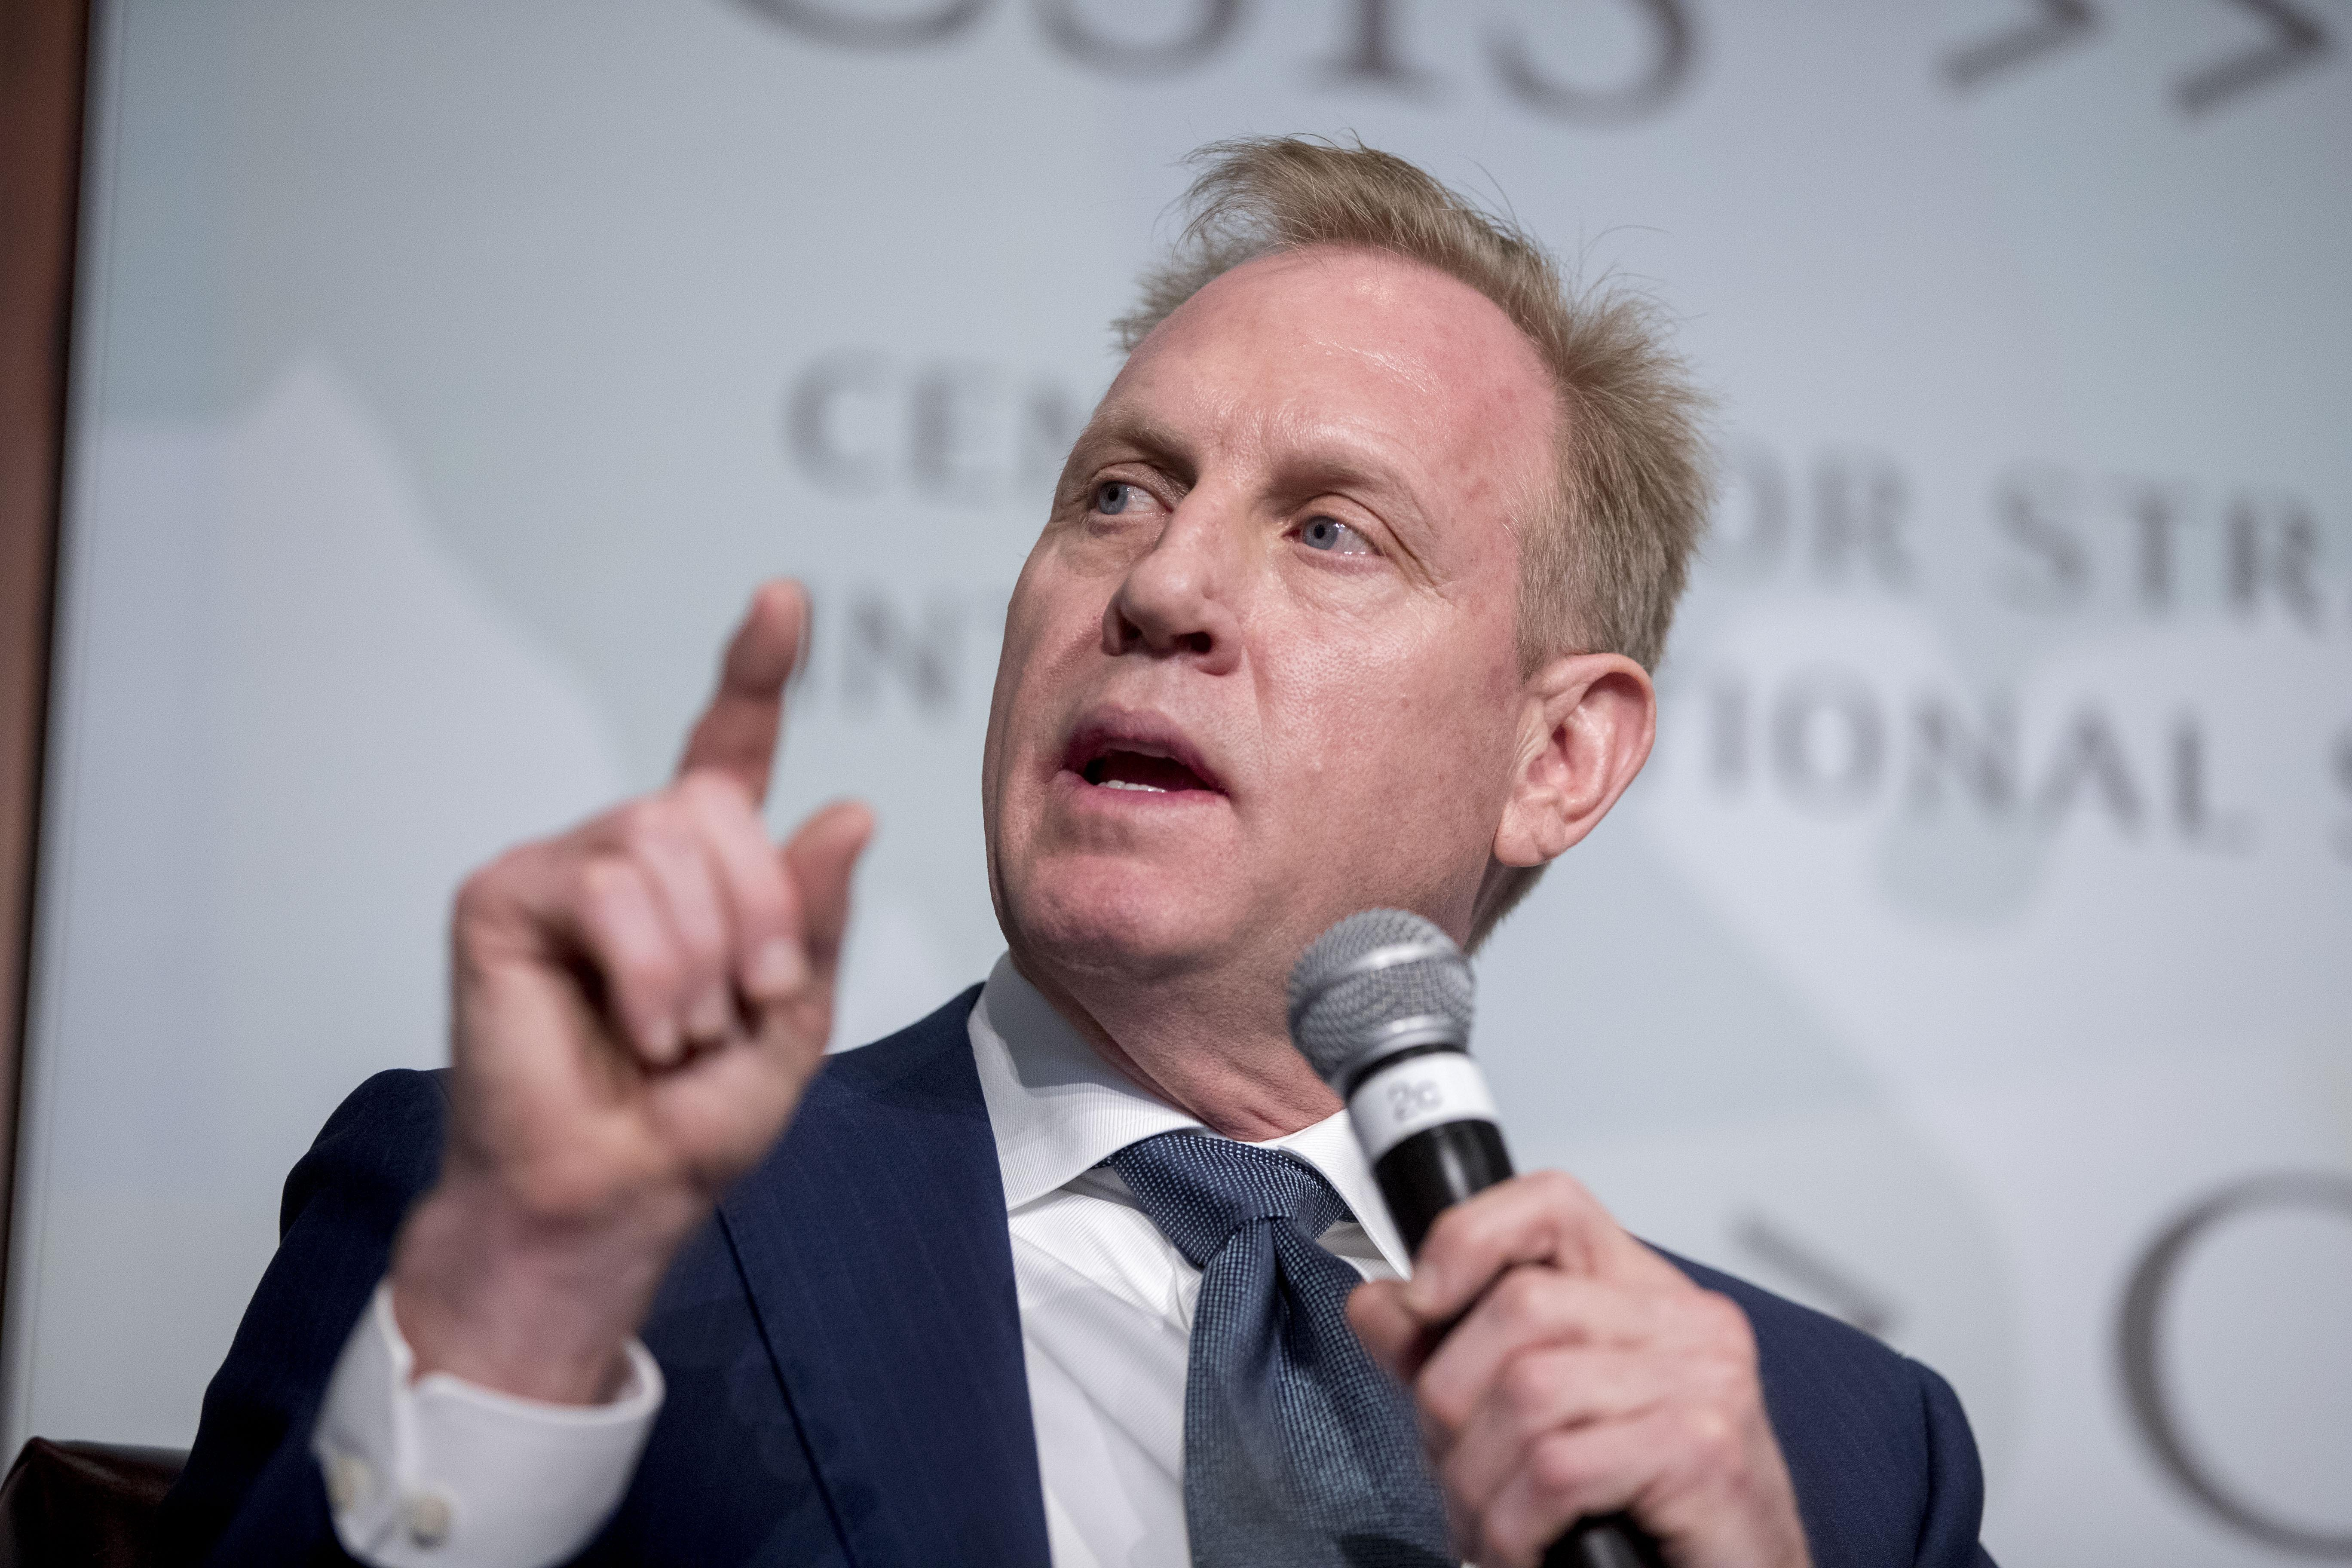 Pentagon chief Patrick Shanahan cleared of charges he favored ex-employer Boeing